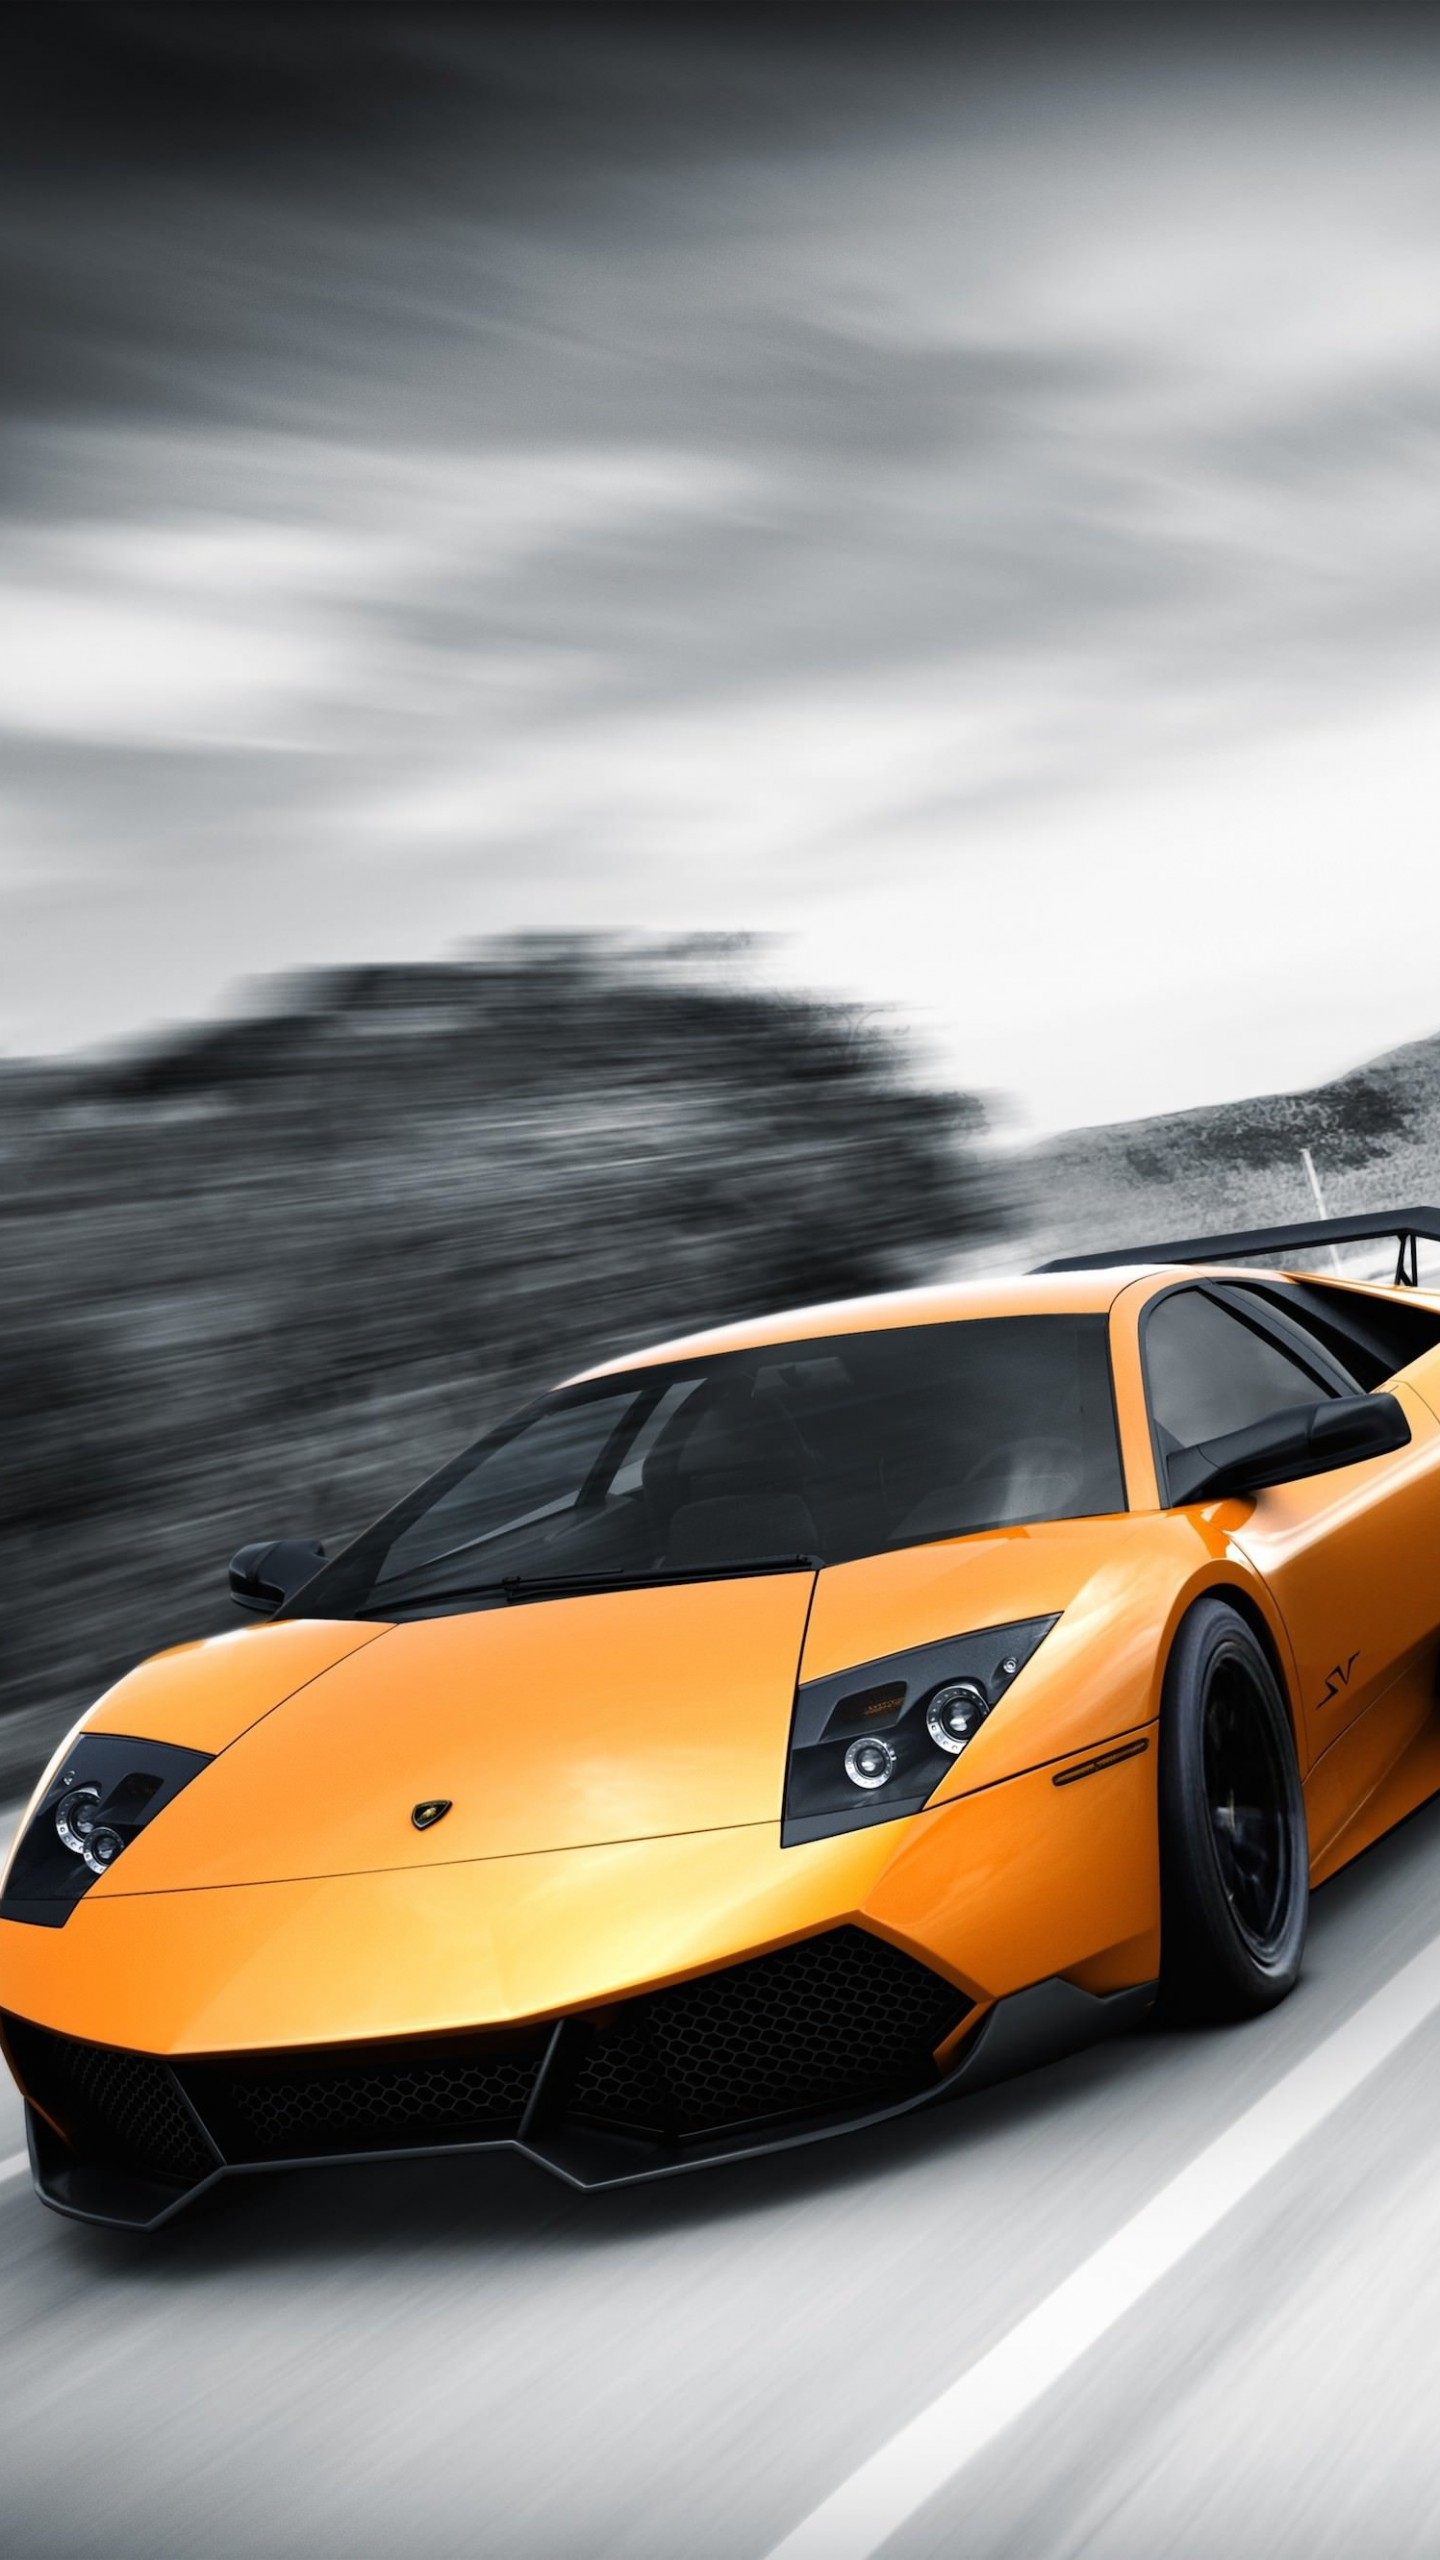 Lamborghini Murcielago LP670 Wallpaper for Google Nexus 6P